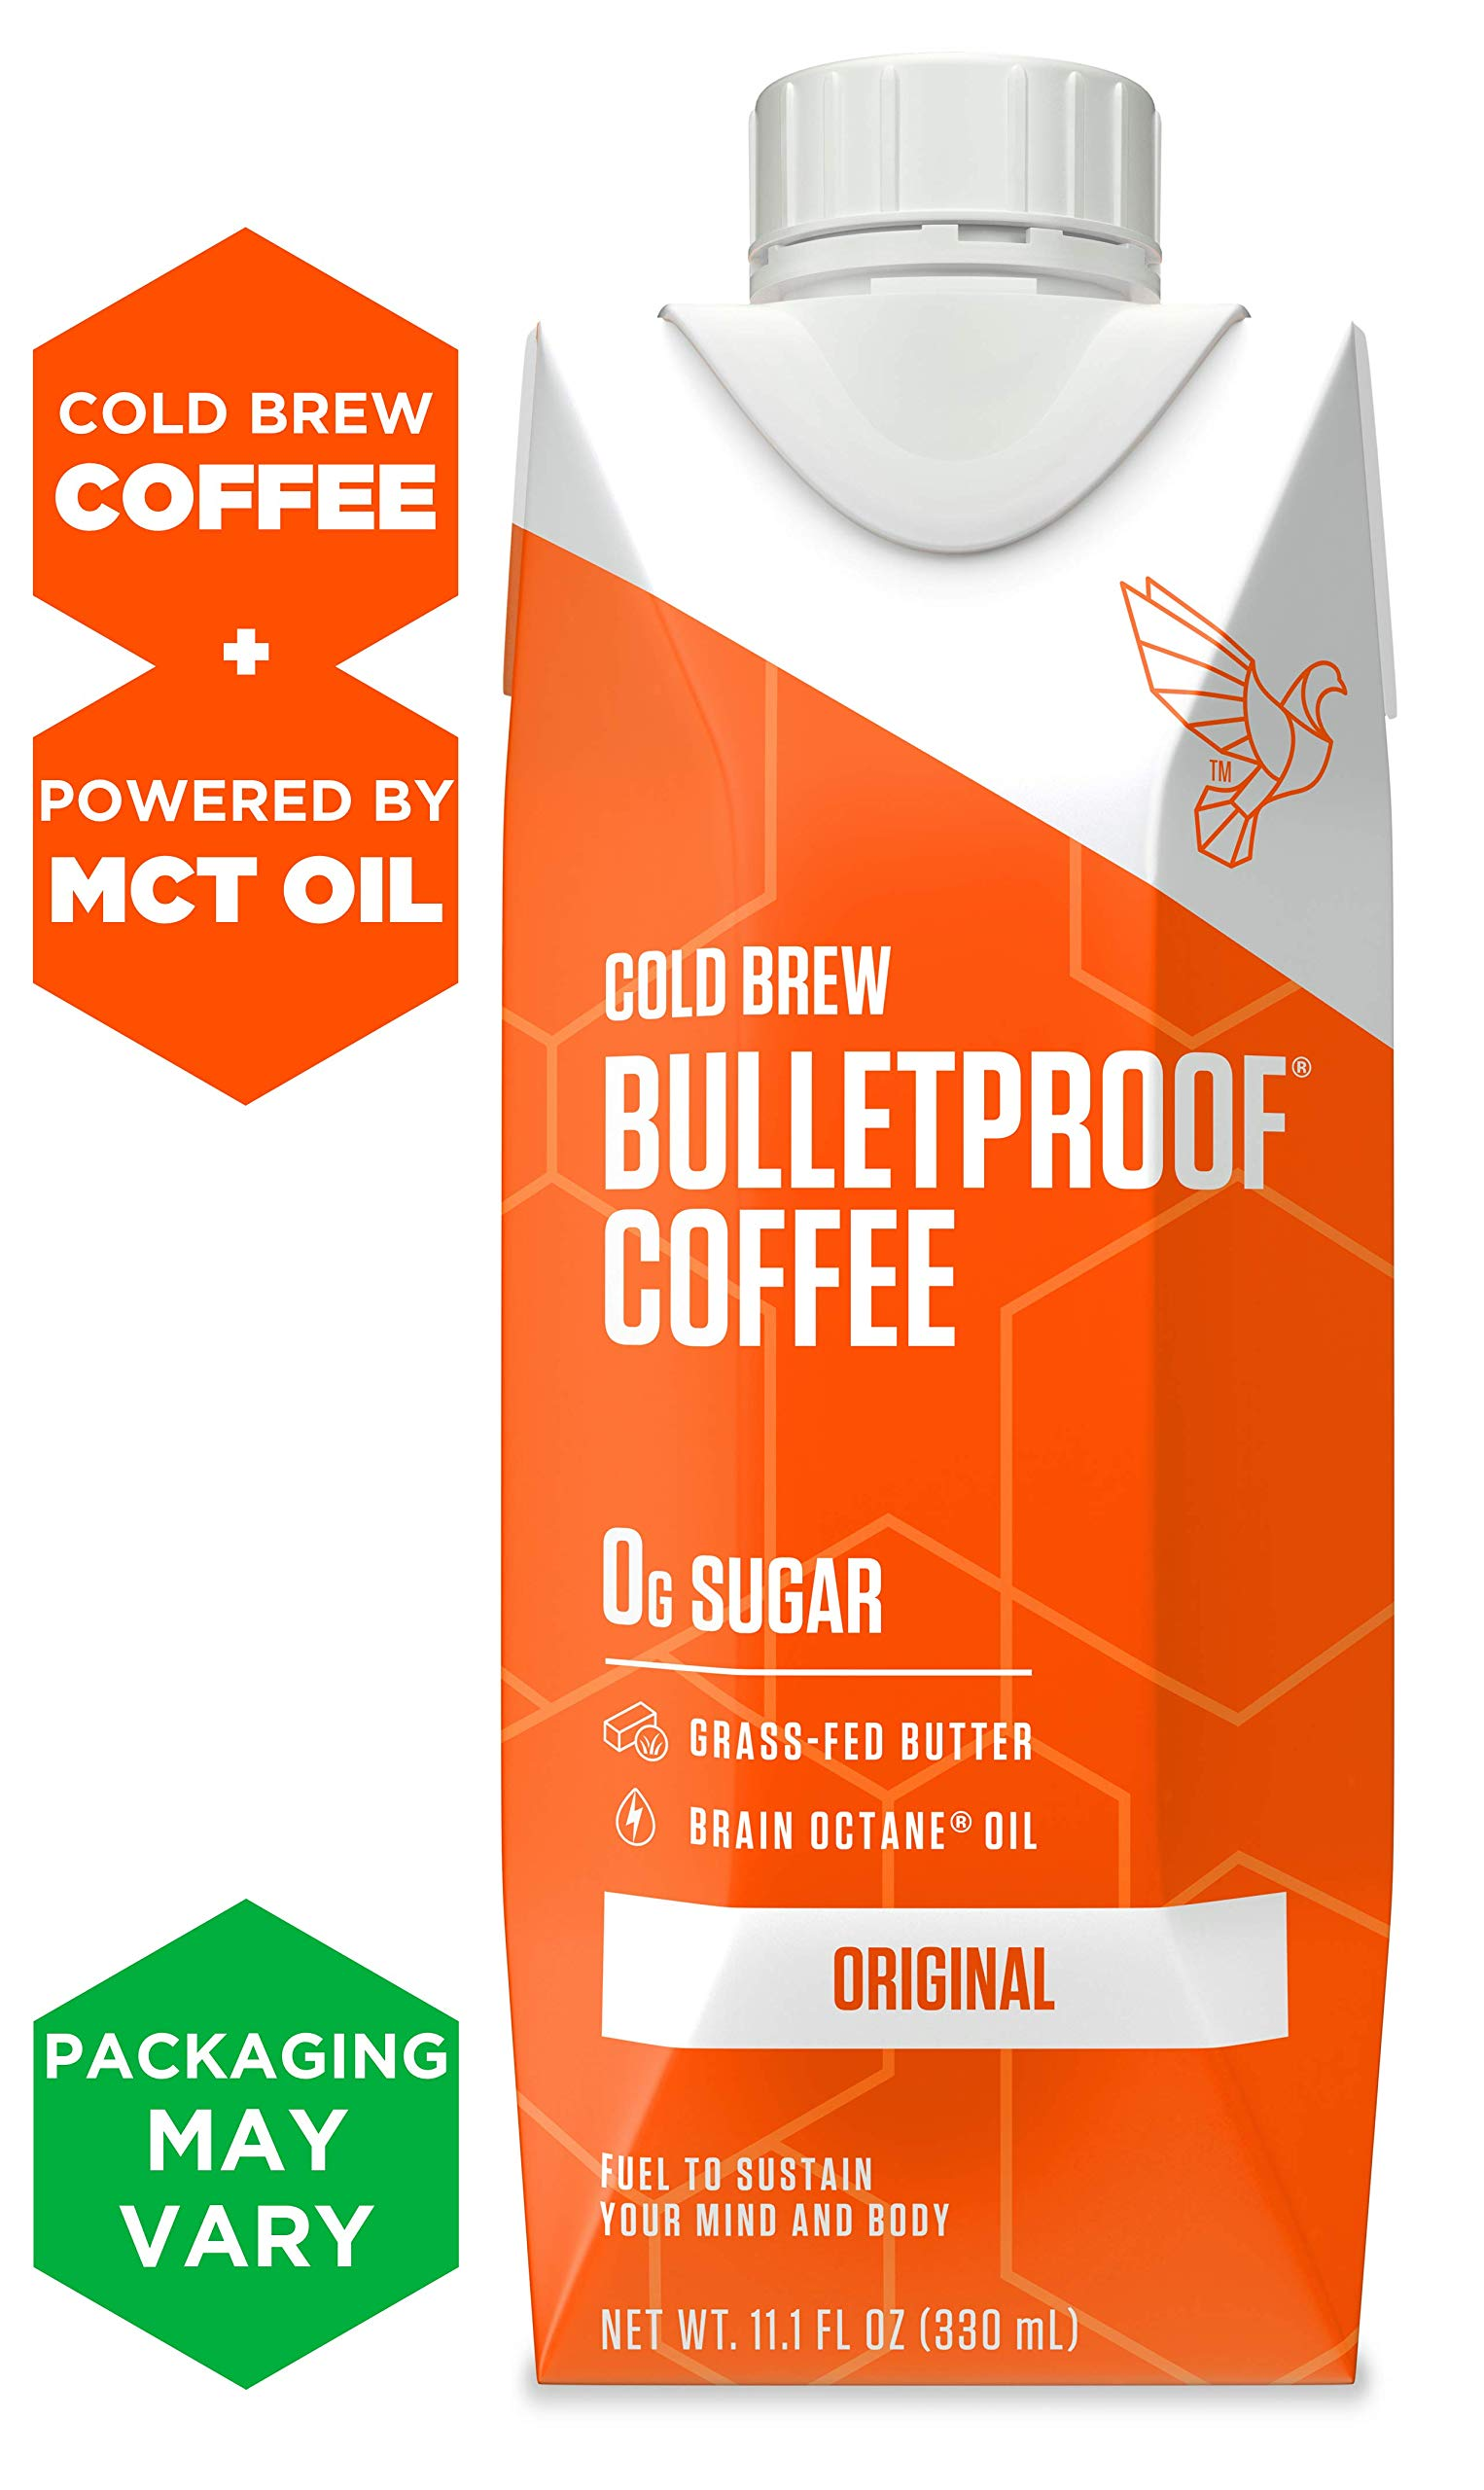 Bulletproof Cold Brew Coffee, Original Flavor, Keto Friendly, Sugar Free, with Brain Octane oil and Grass-fed Butter (12 Pack)